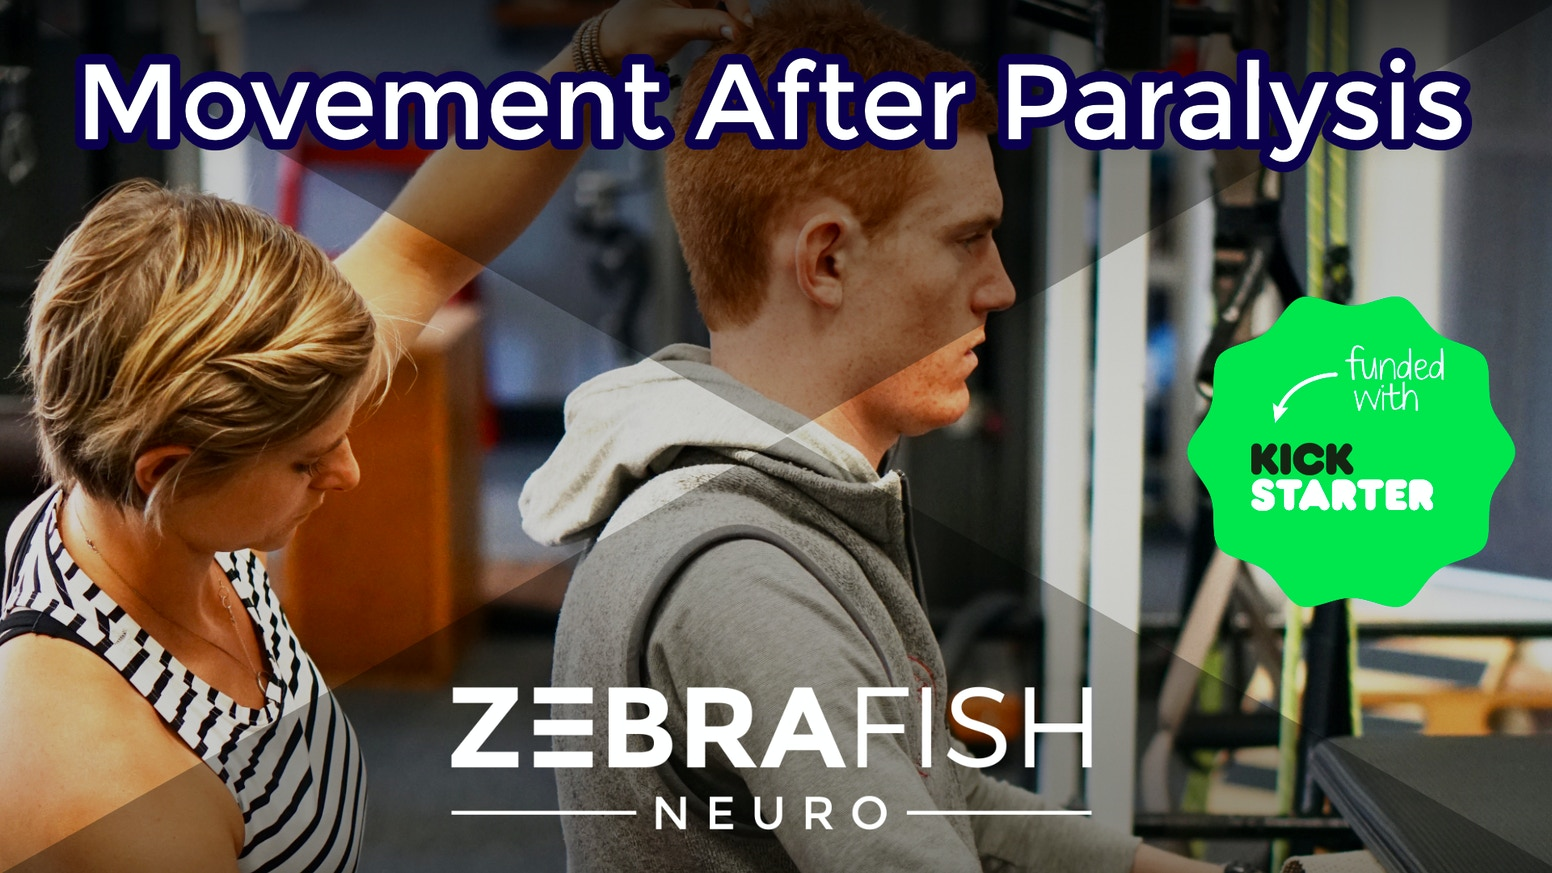 Traditional rehab for paralysis recovery doesn't work. This is our solution packaged in a training manual for clients and trainers to learn together.